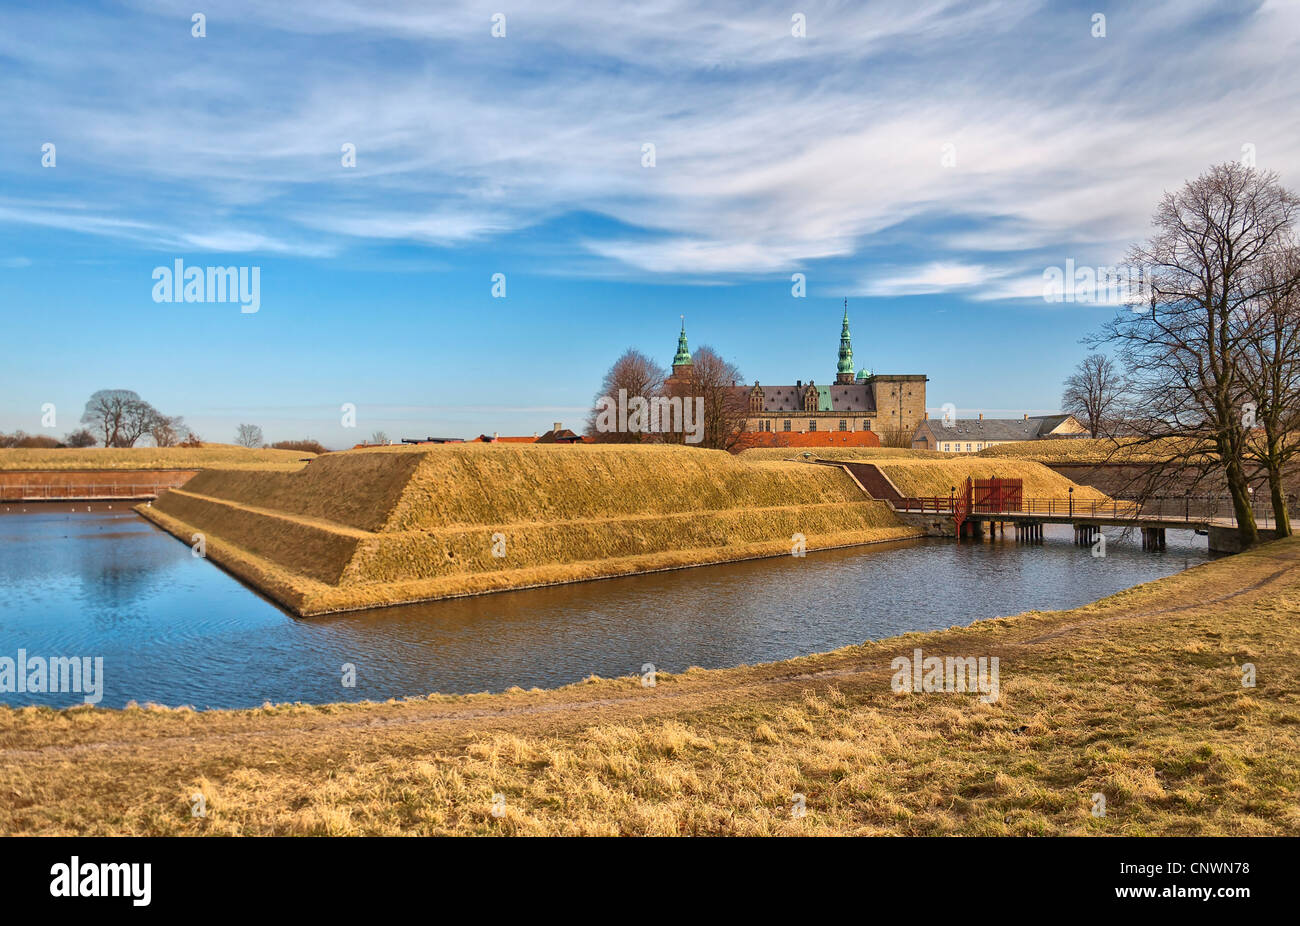 The renaissance Kronberg castle situated in the Danish town of Helsingor. Stock Photo